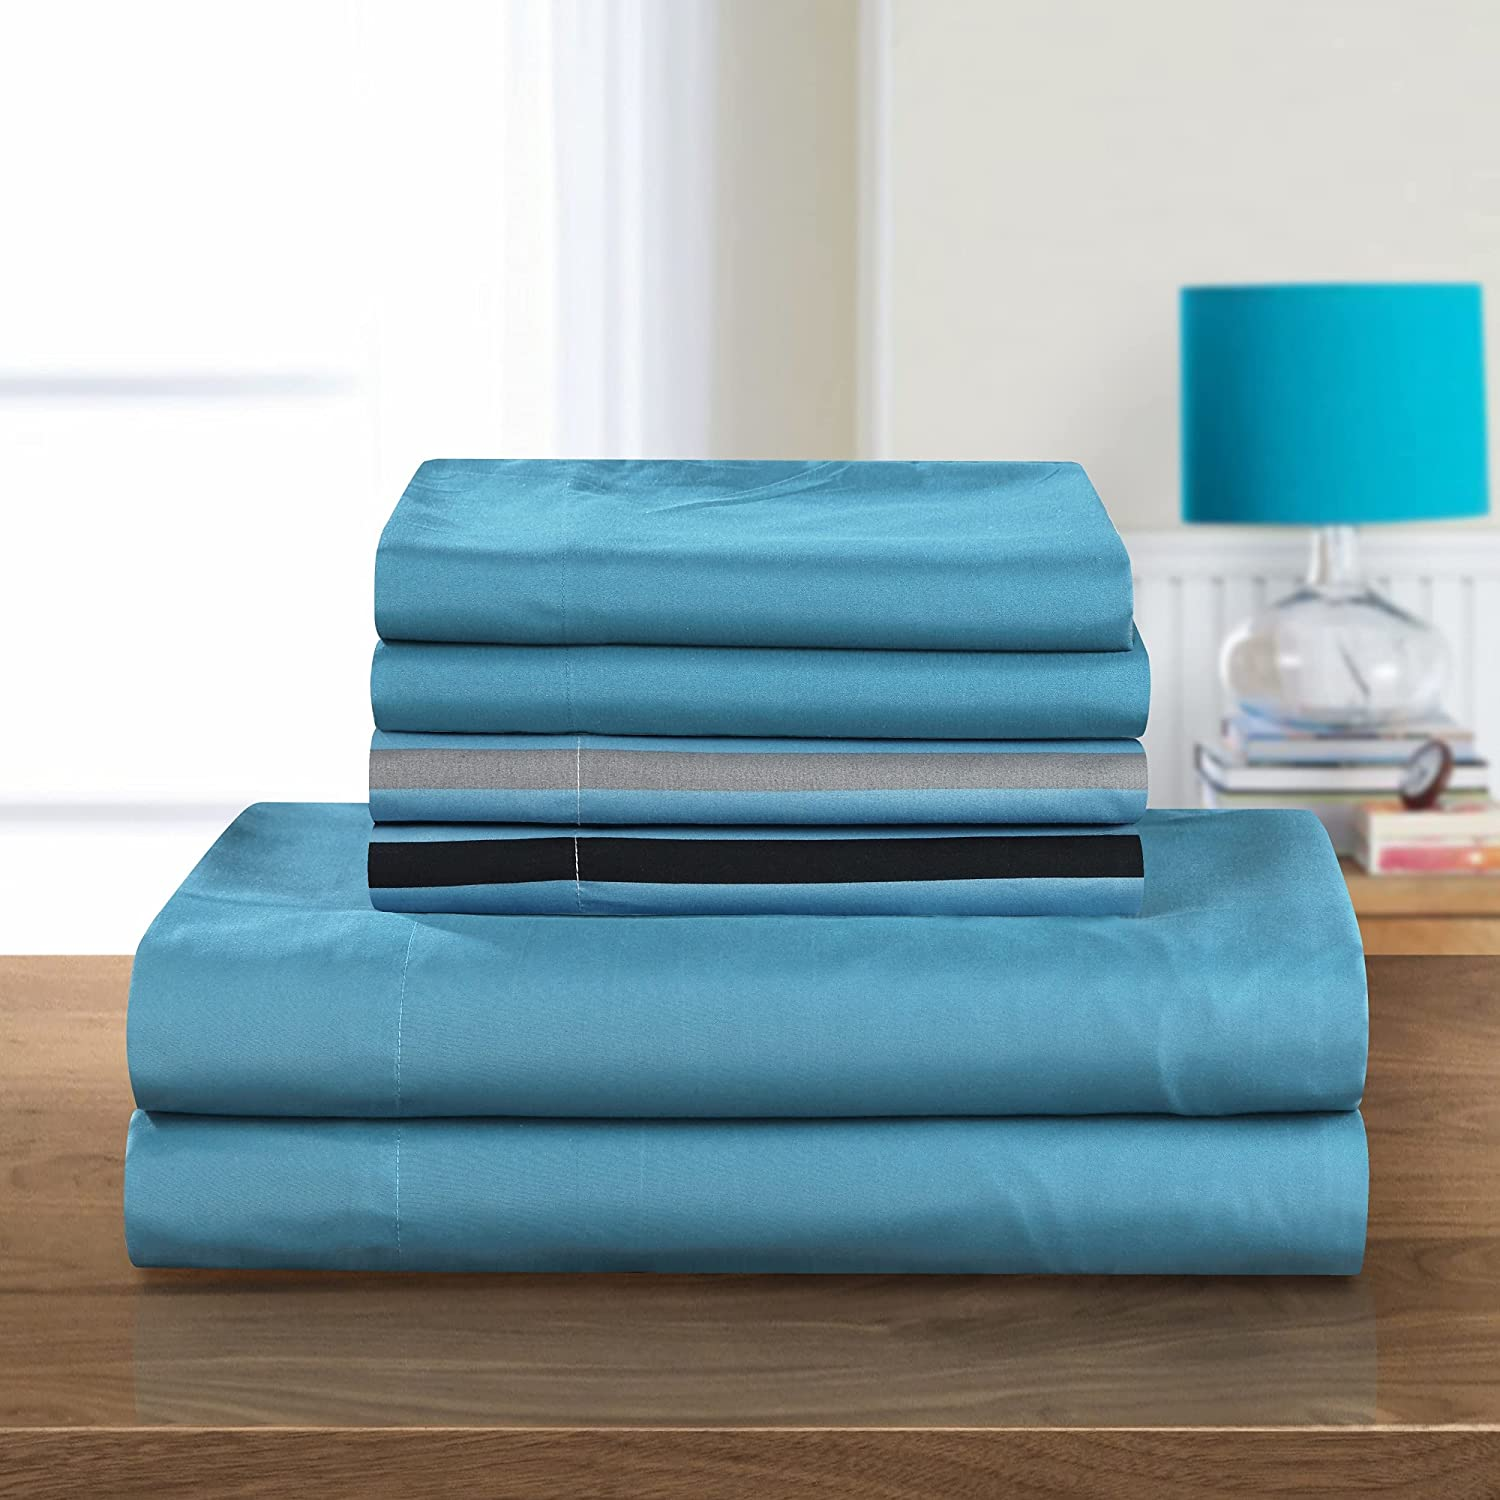 Chic Home 4 Piece Solid 2021 Translated autumn and winter new Super Brushed Sheet Microfiber Soft Set